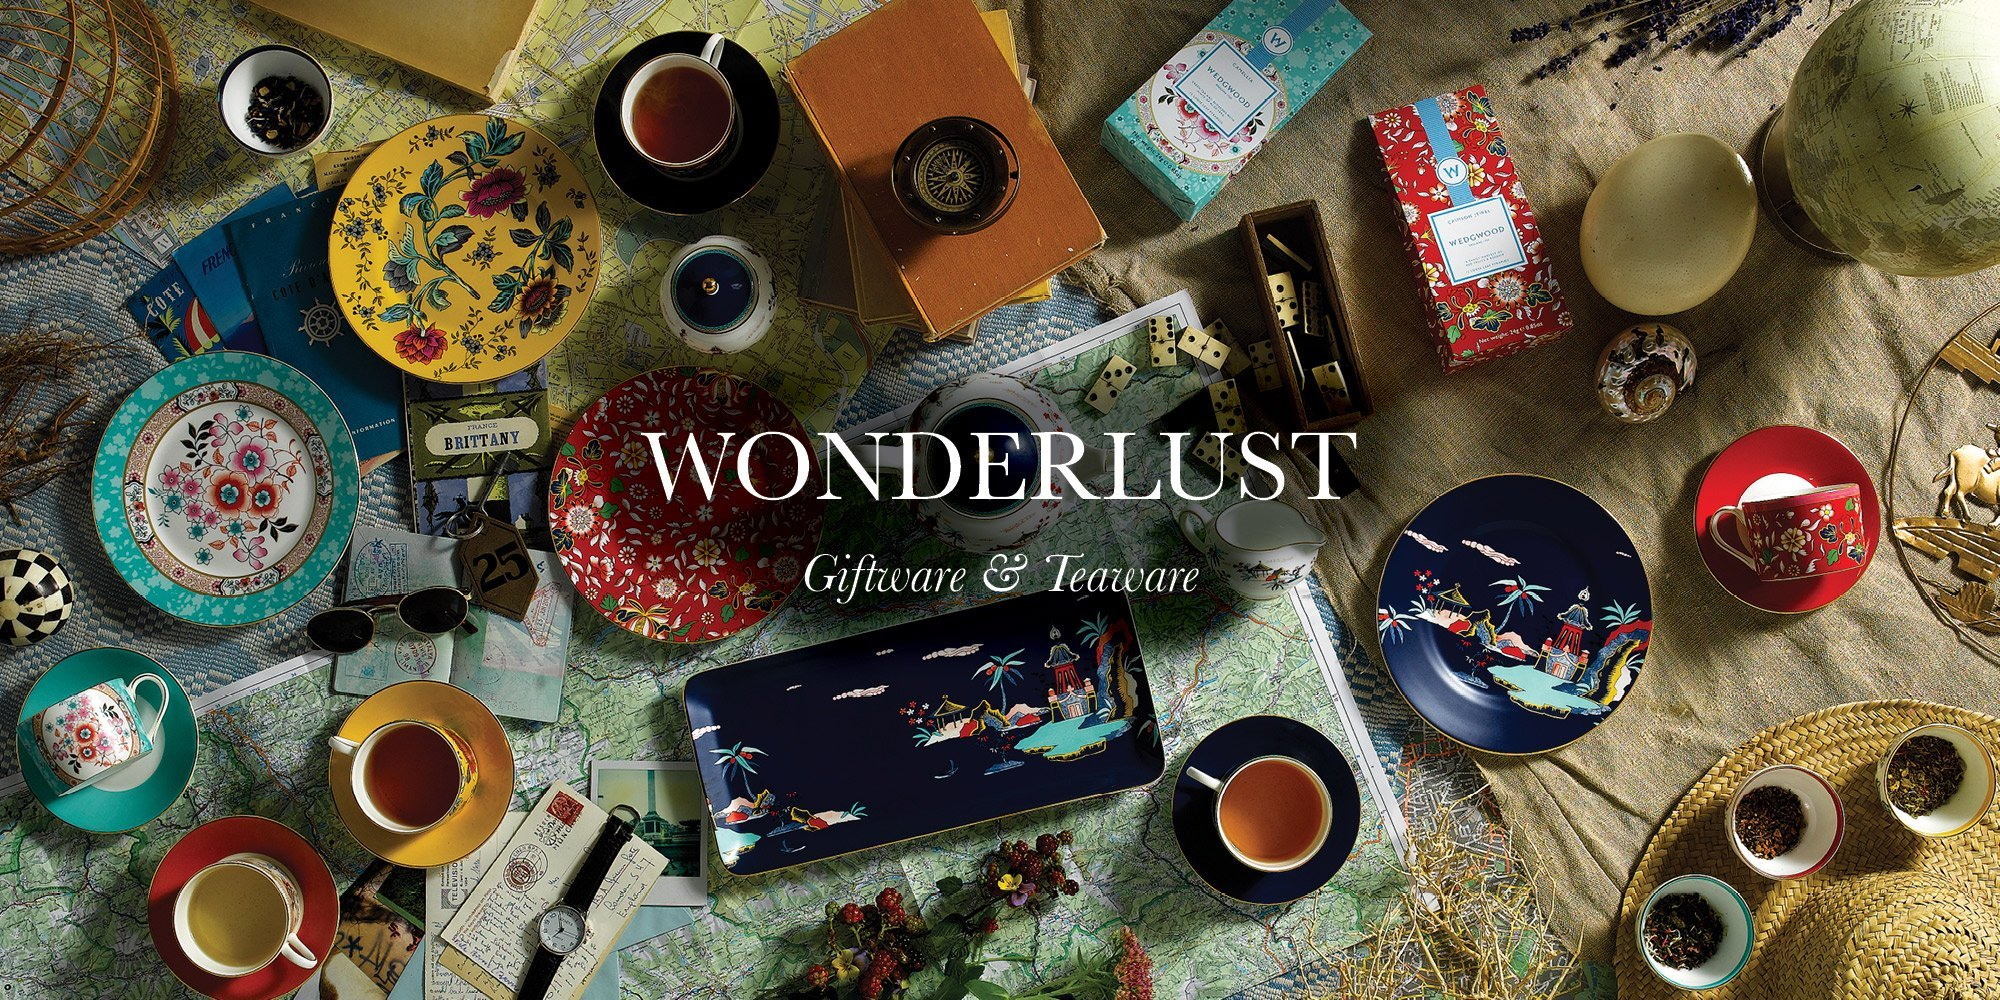 wonderlust teaware & giftware top